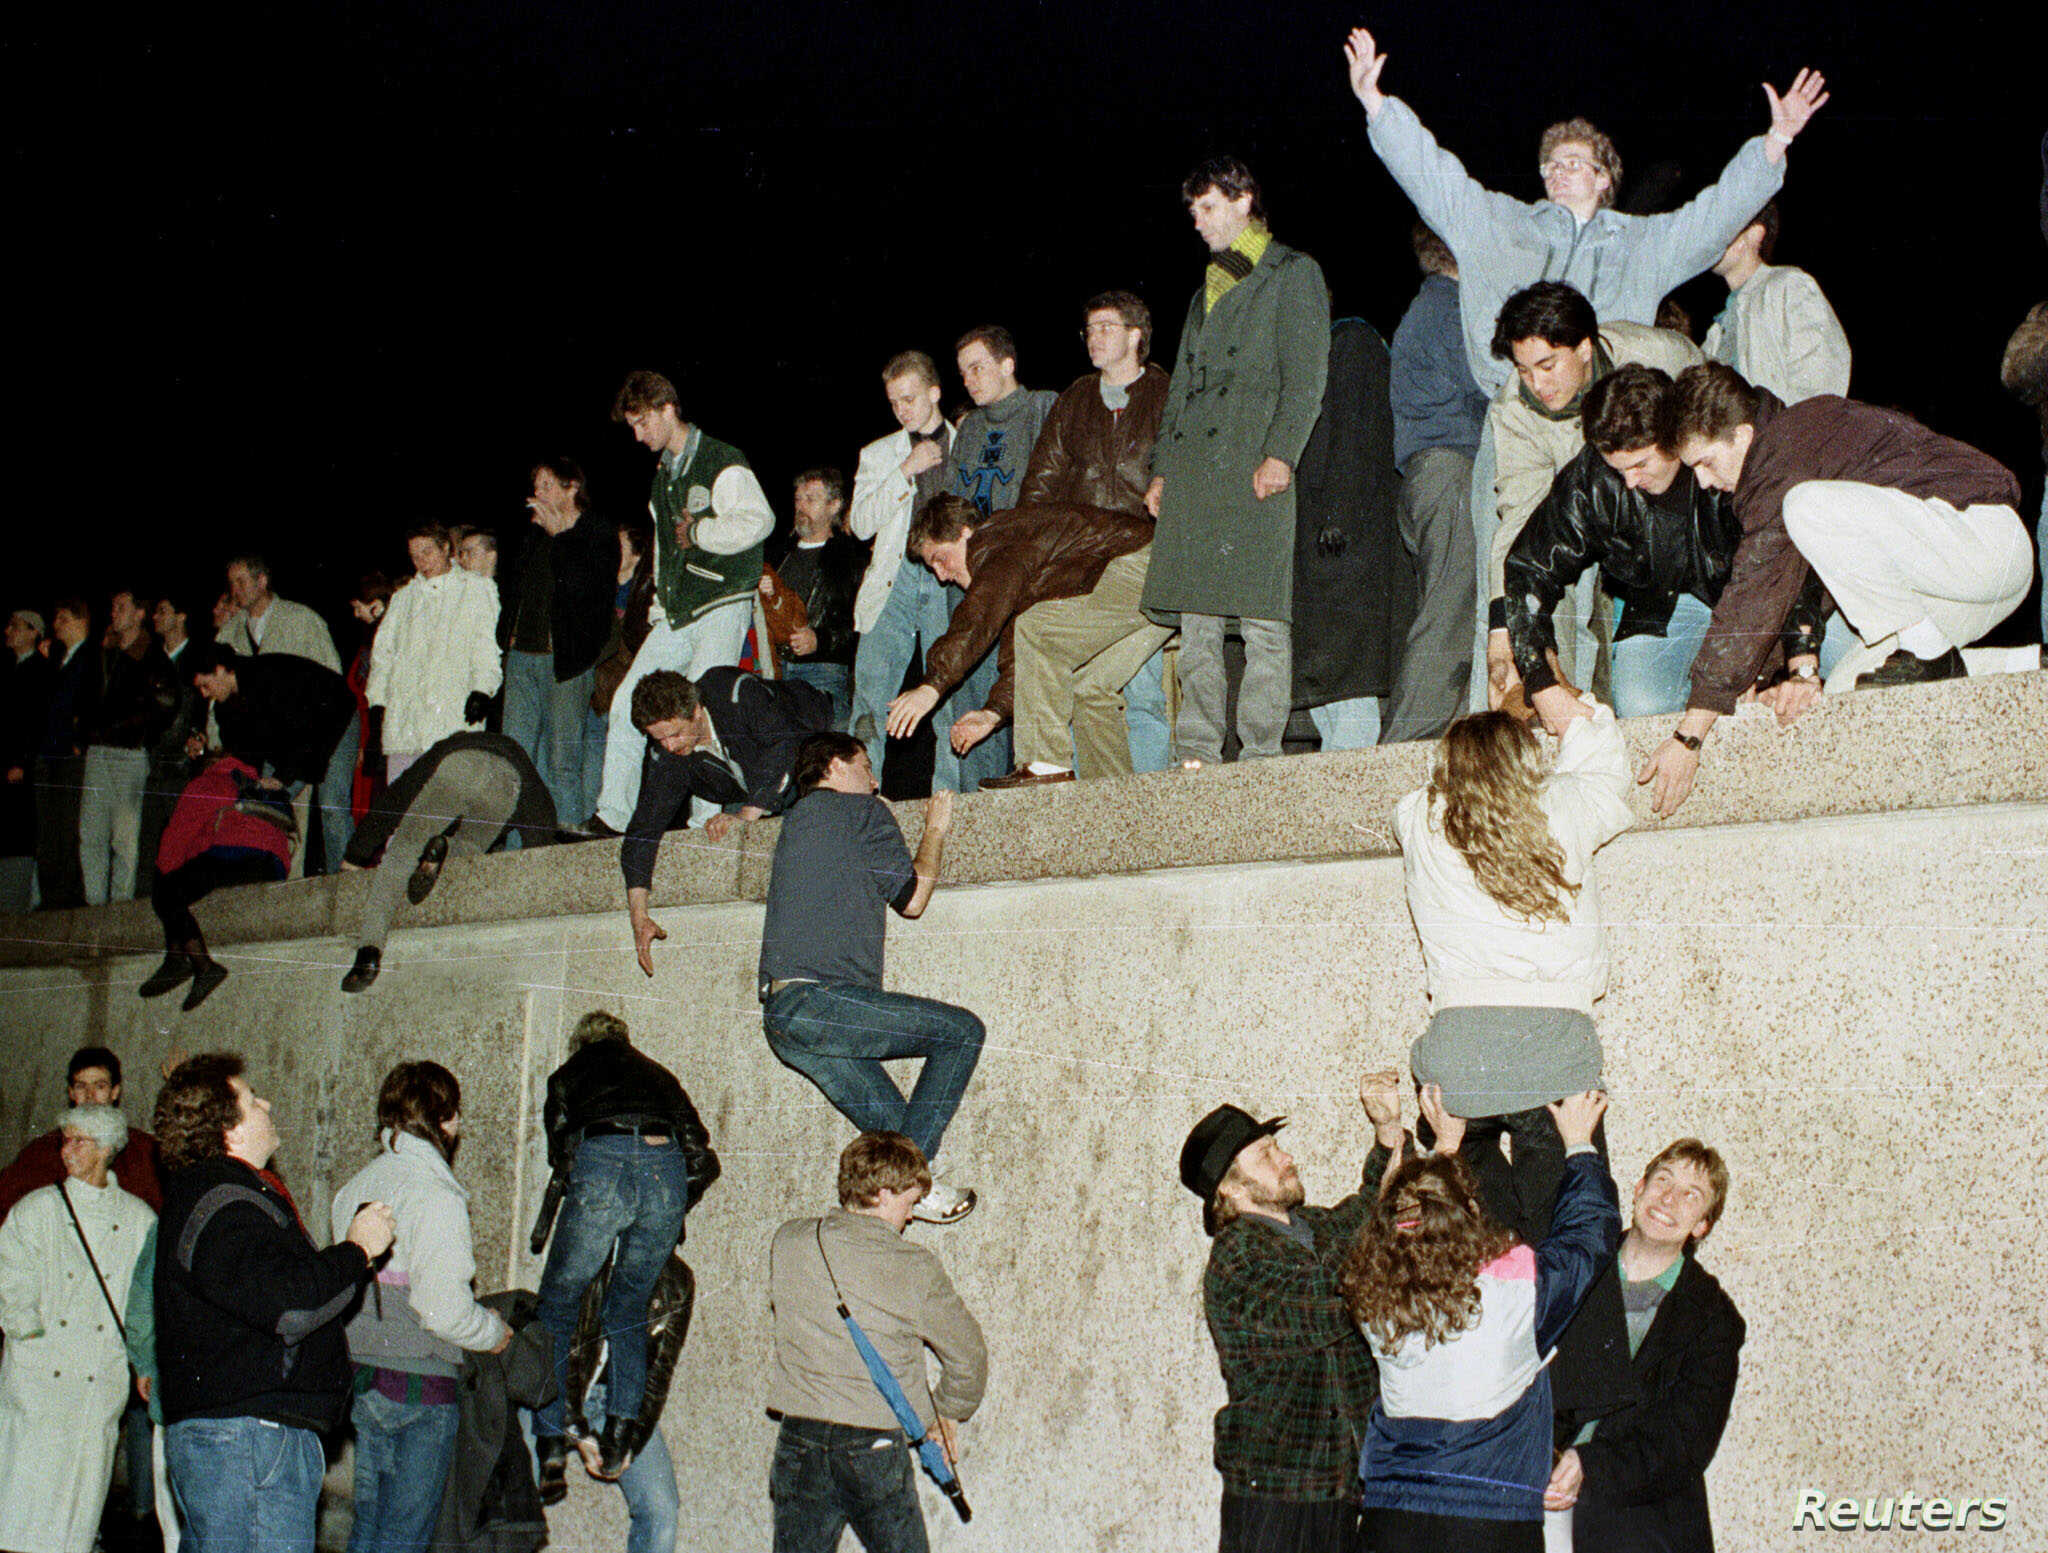 East German citizens climb the Berlin wall at the Brandenburg Gate as they celebrate the opening of the East German border in this November 10, 1989 file photo (Image: voanews.com)